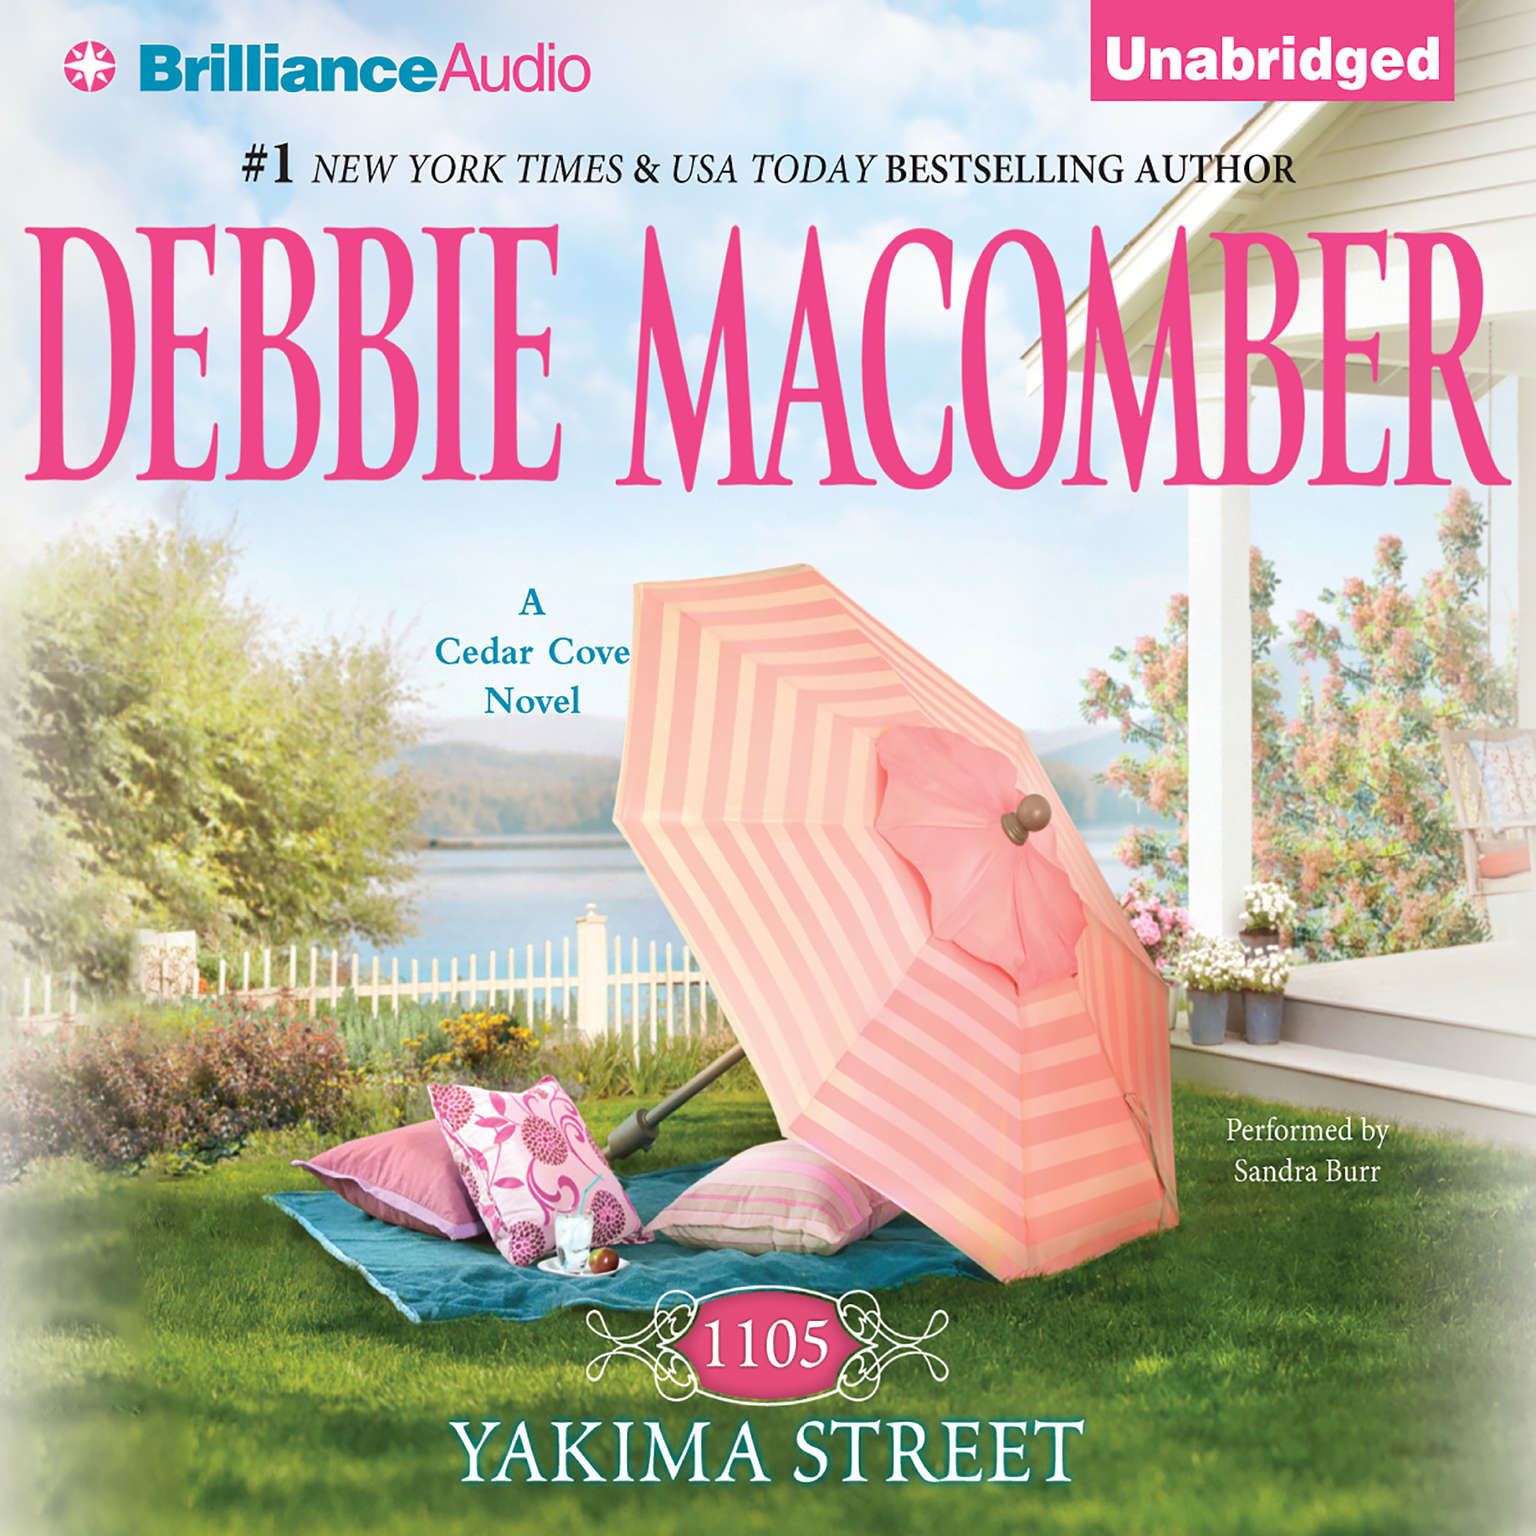 Printable 1105 Yakima Street Audiobook Cover Art